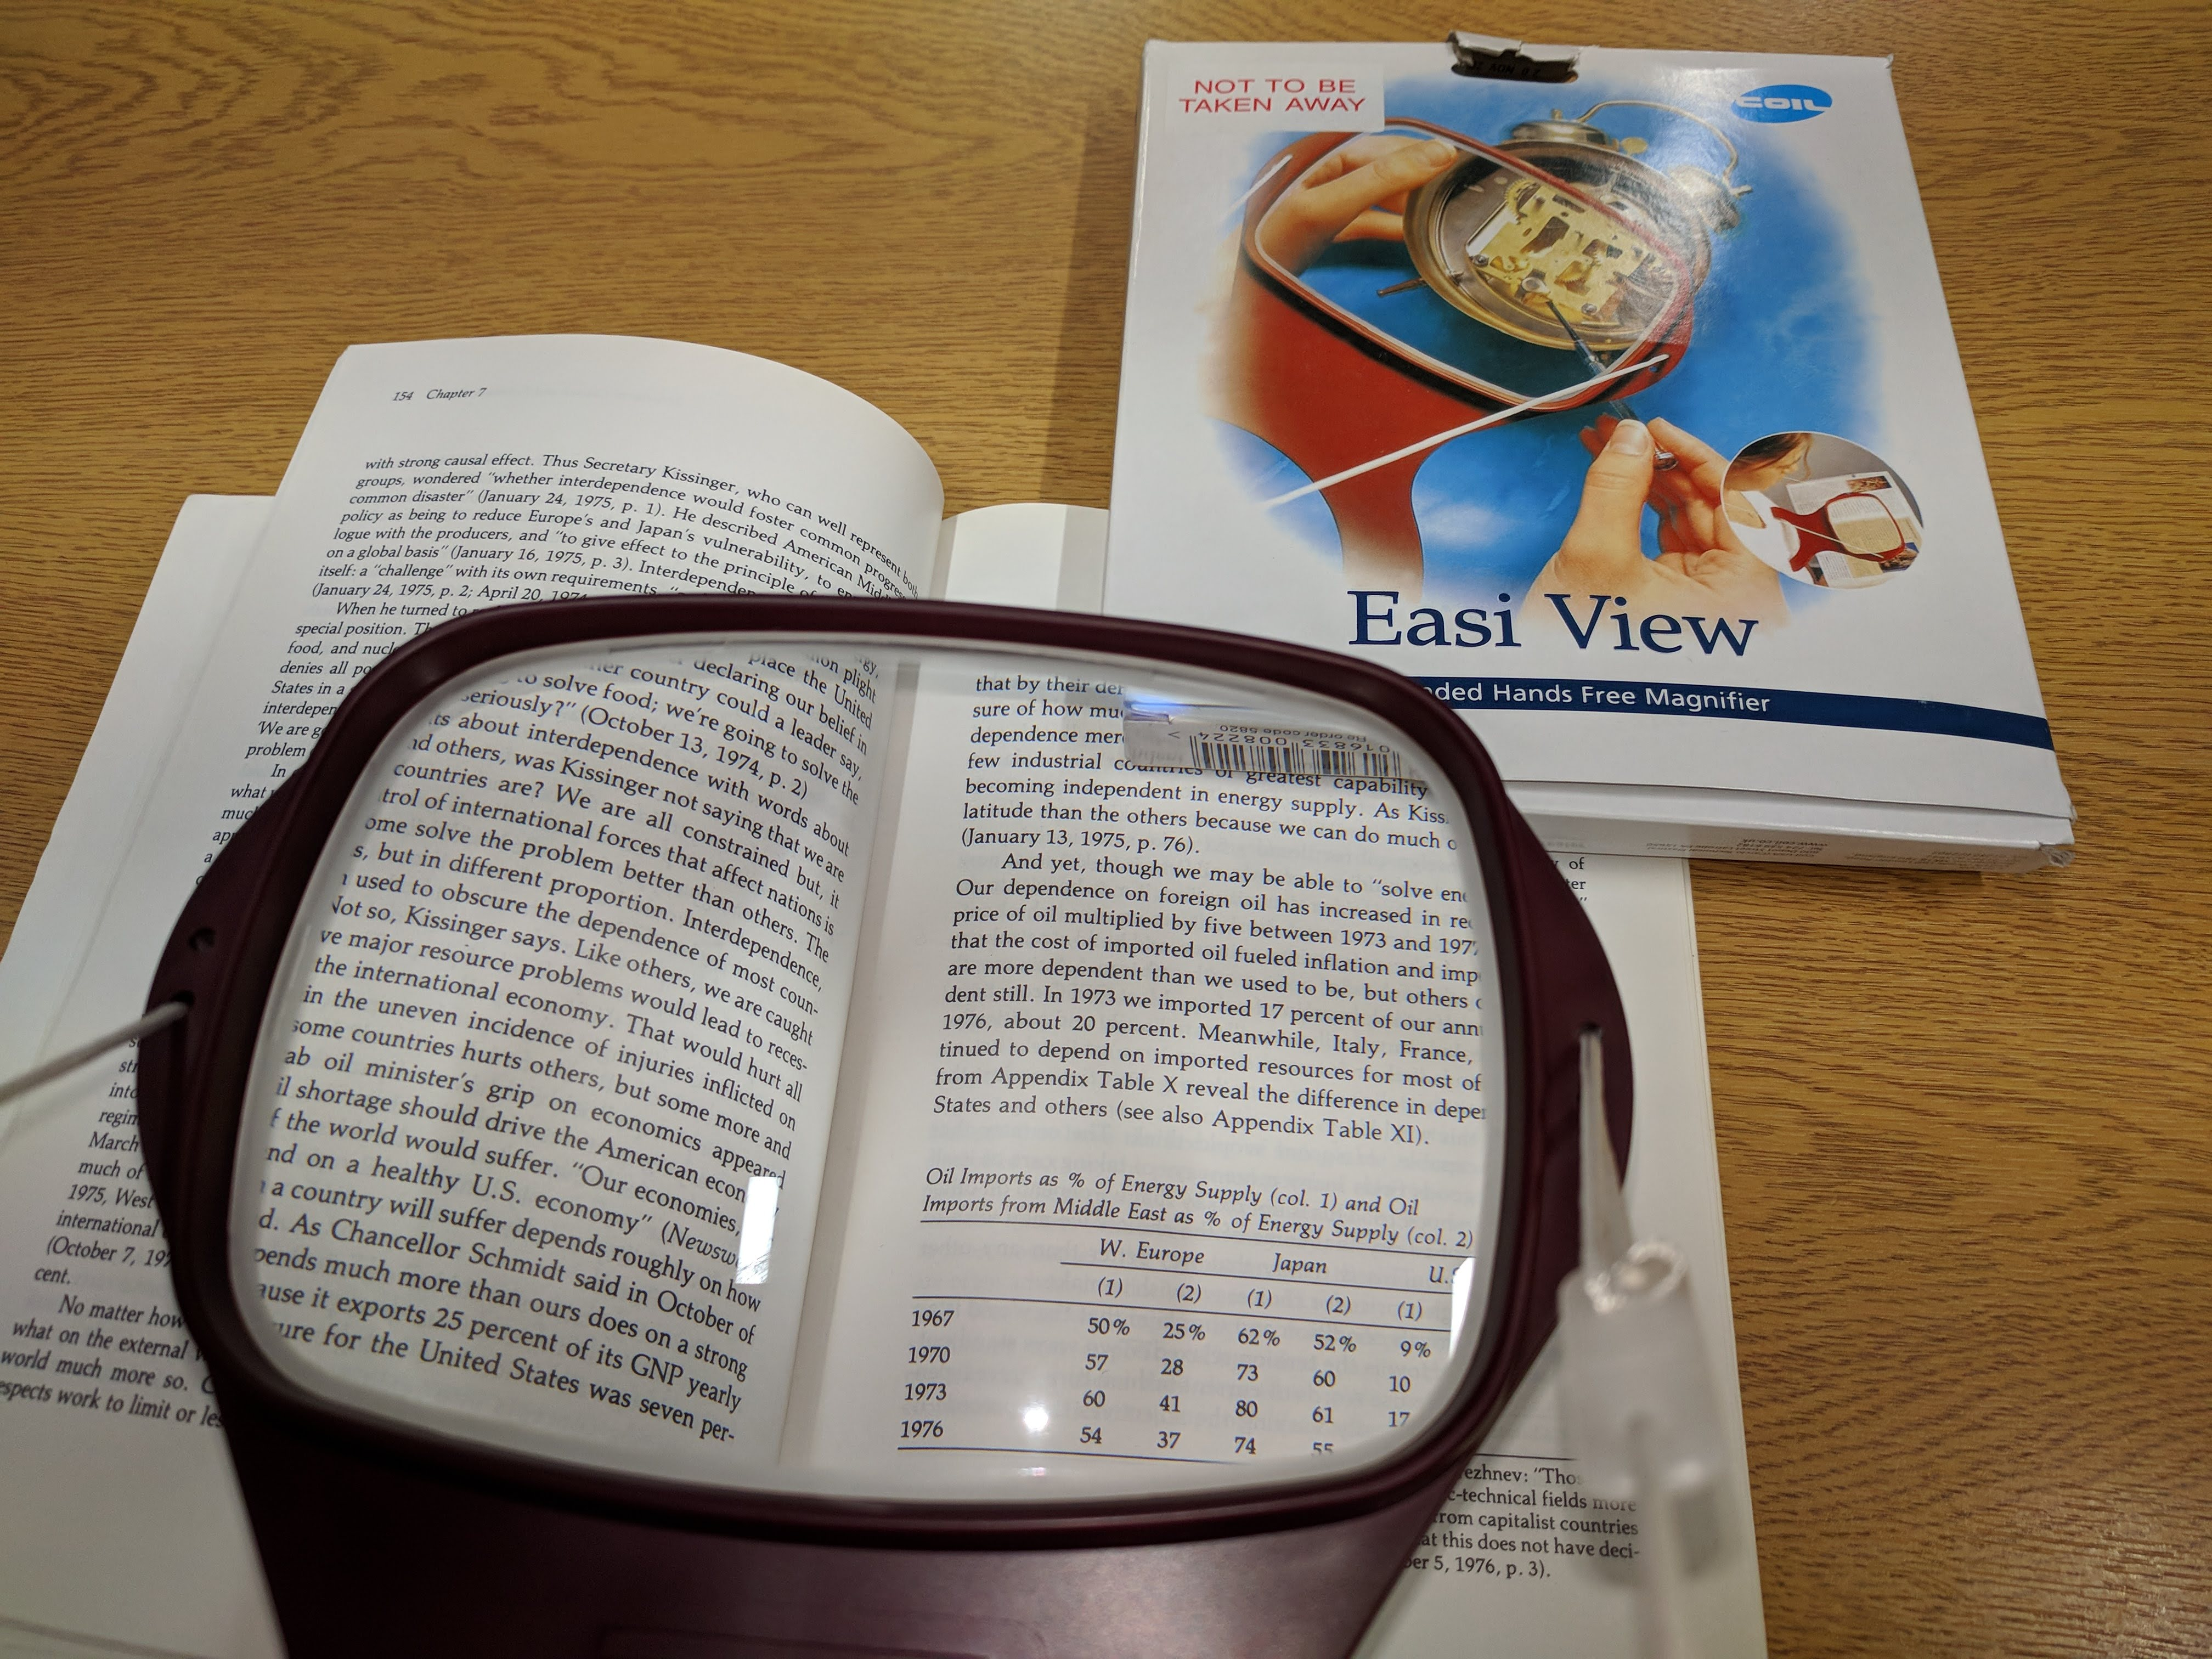 A photograph of a hands-free magnifier and its box.